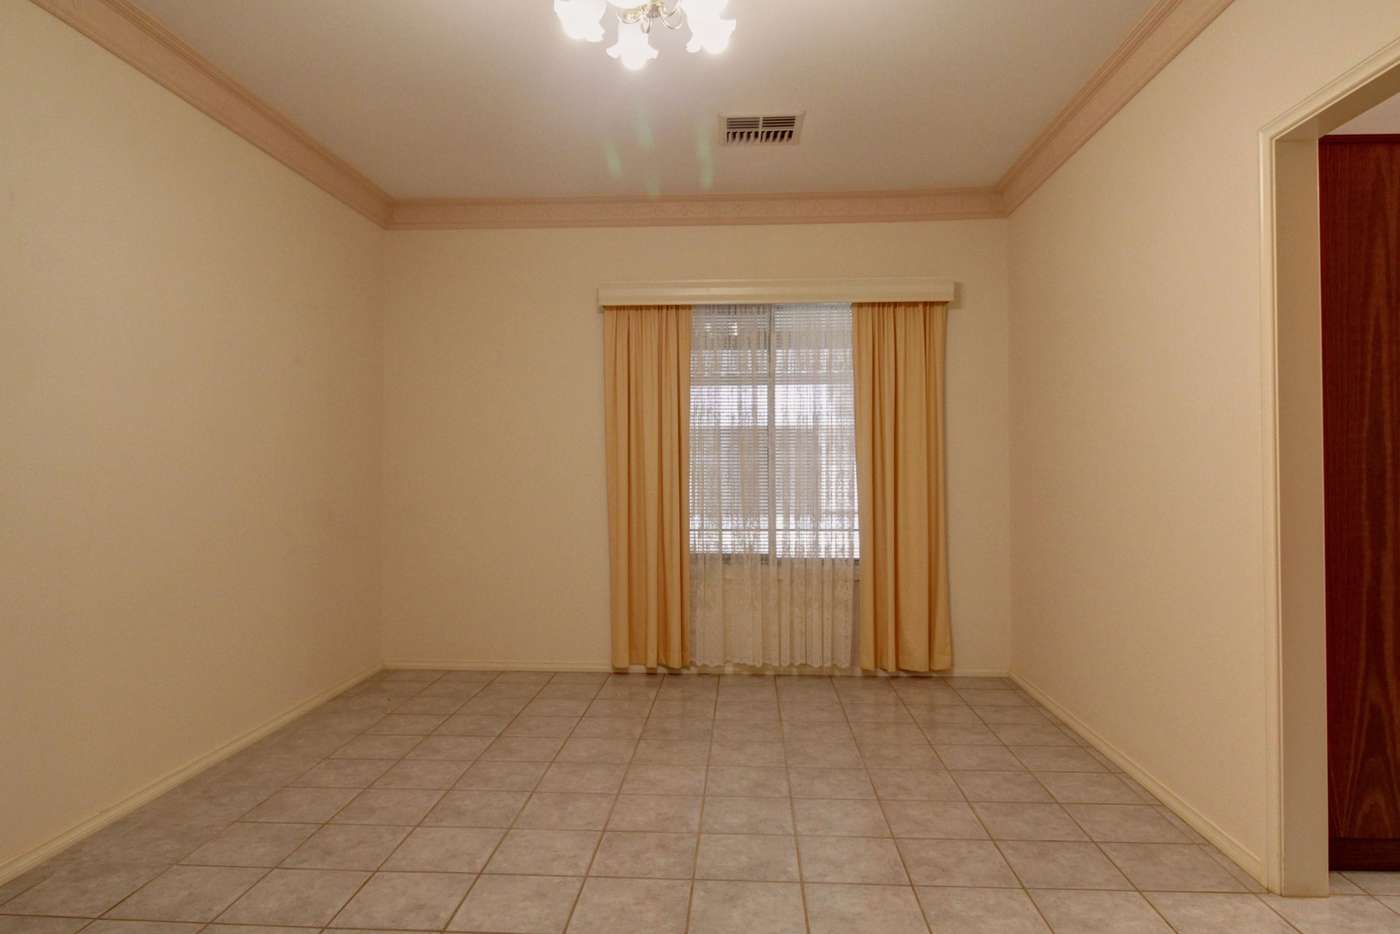 Seventh view of Homely house listing, 12 Fowles Street, Barmera SA 5345